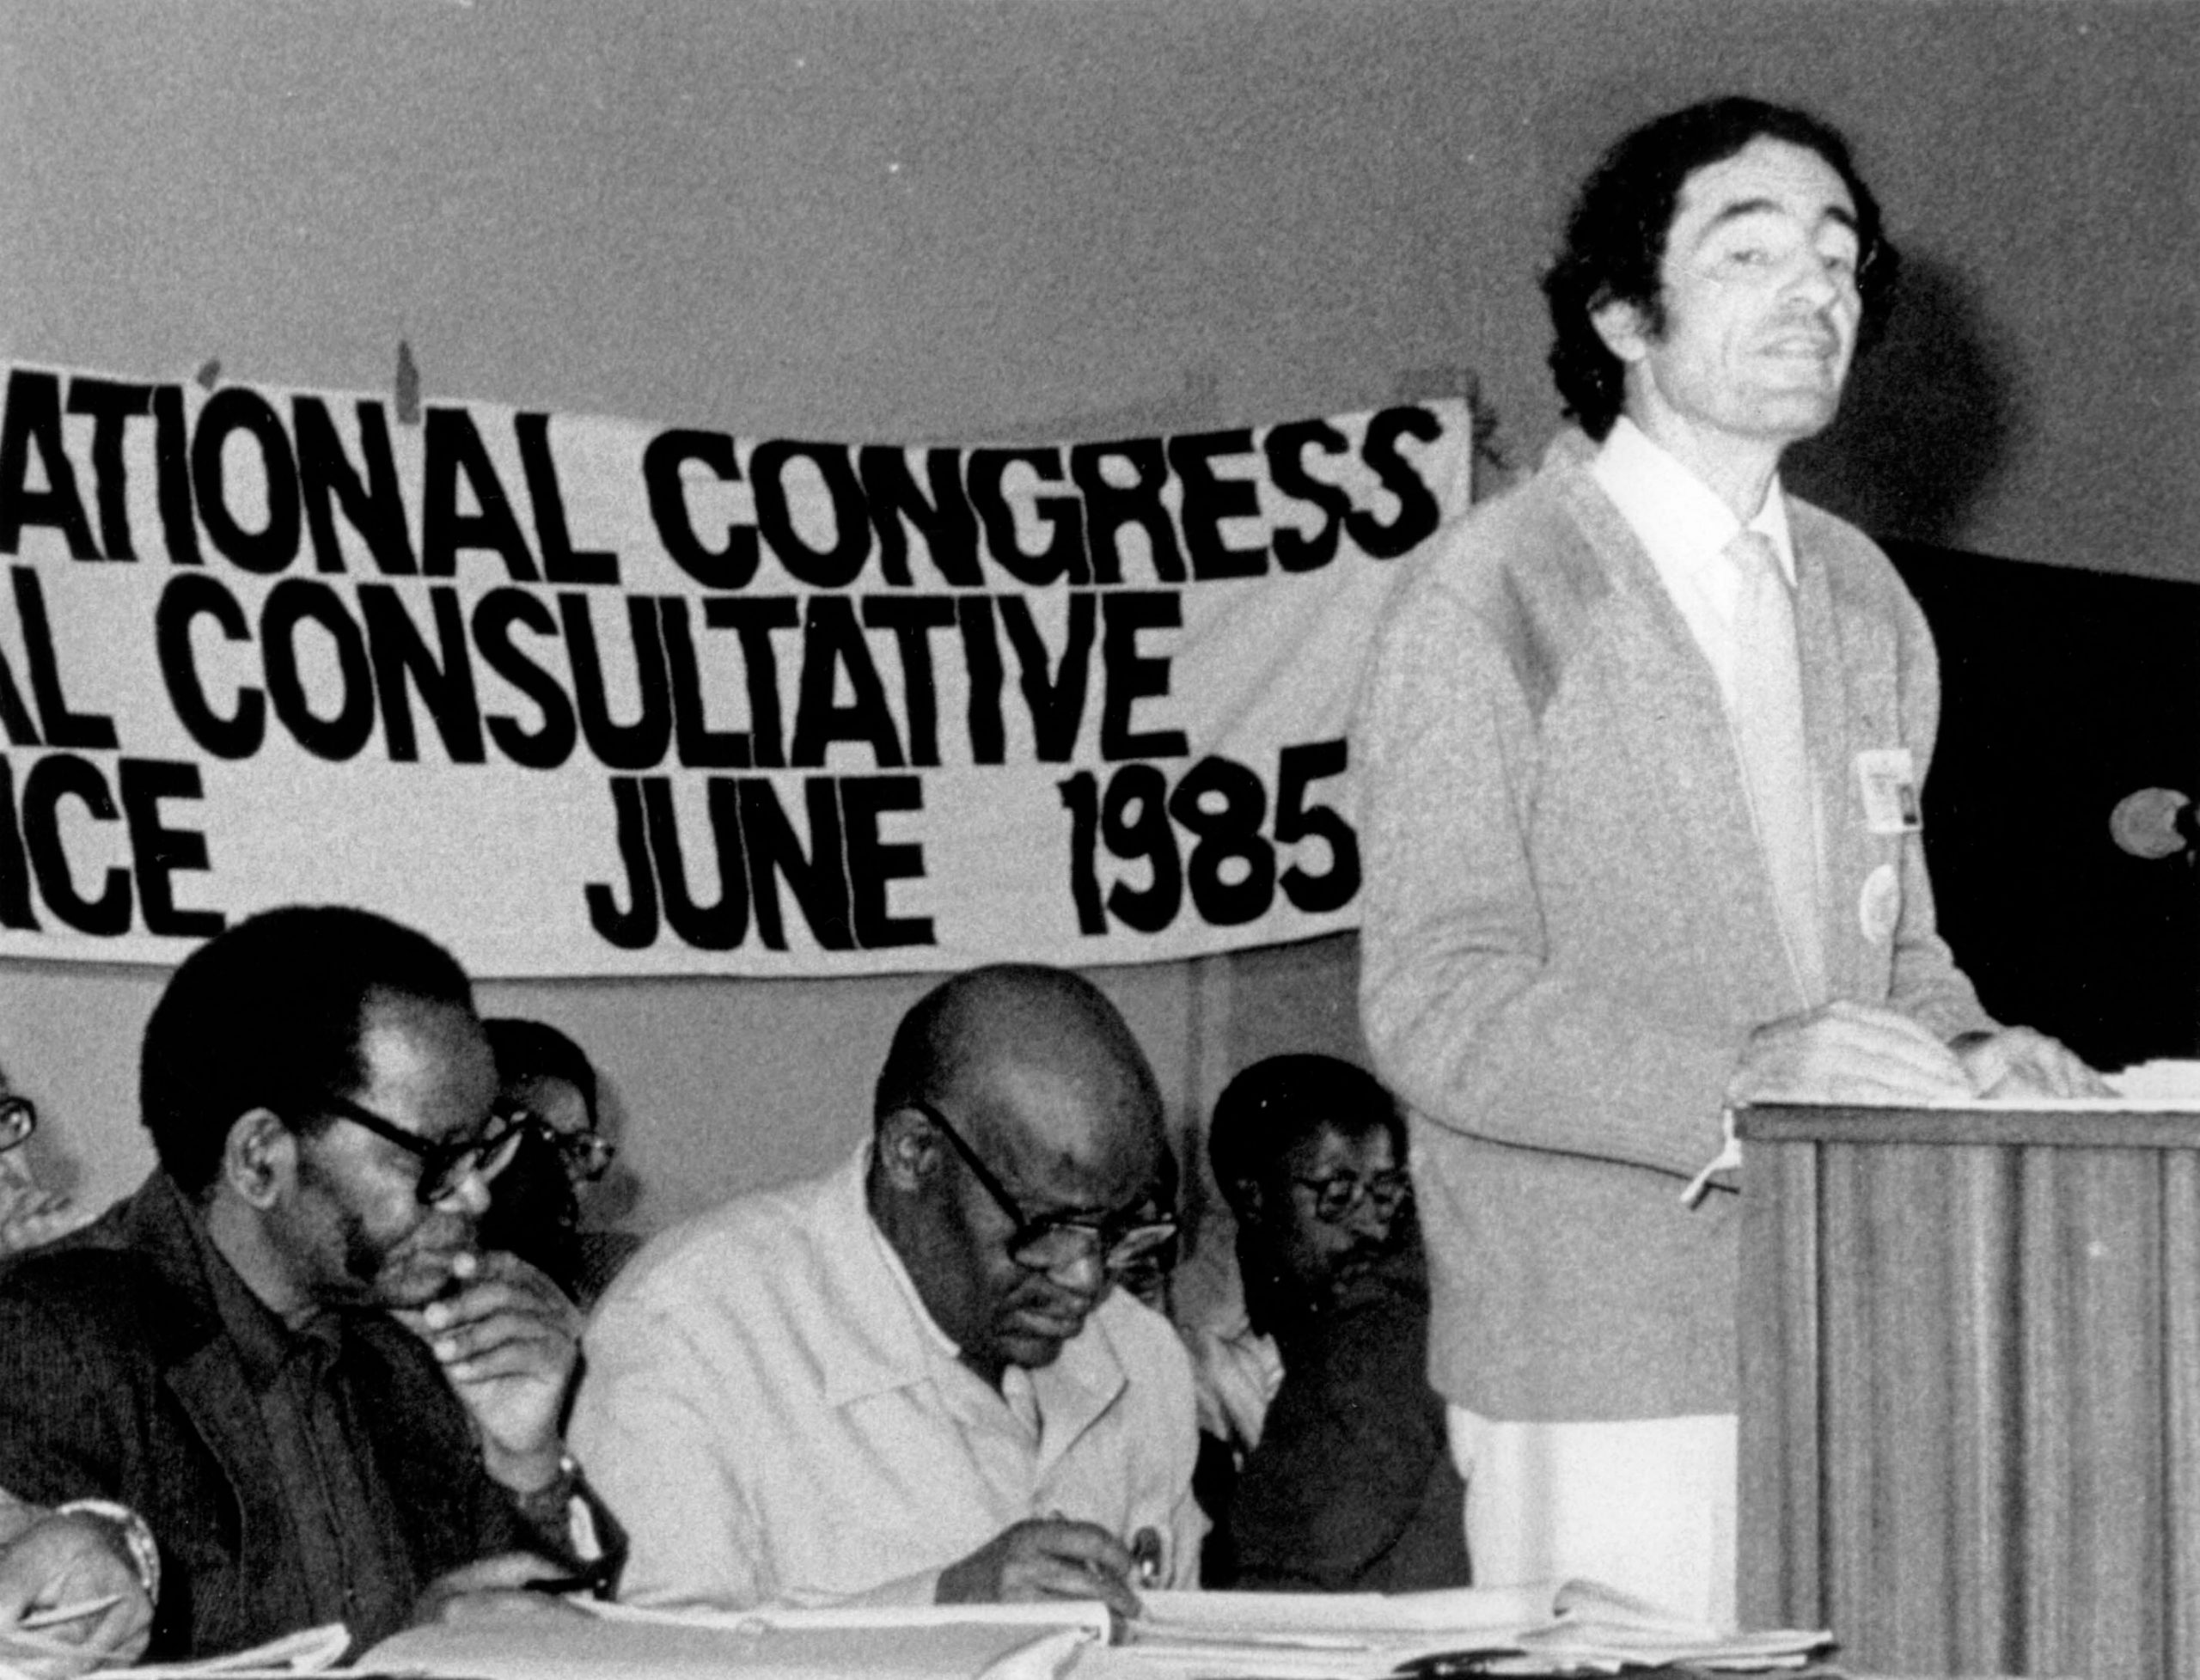 Albie Sachs speaks at the ANC National Consultative Conference, Kabwe, 1985. Sachs argued for the adoption of a Code of Conduct guaranteeing due process for dealing with misconduct by ANC members, and guaranteeing that captured enemy agents would not be subjected to torture. Oliver Tambo and Tom Nkobi are seated to Sachs' left. Albie Sachs Collection, UWC Robben Island Museum Mayibuye Archives